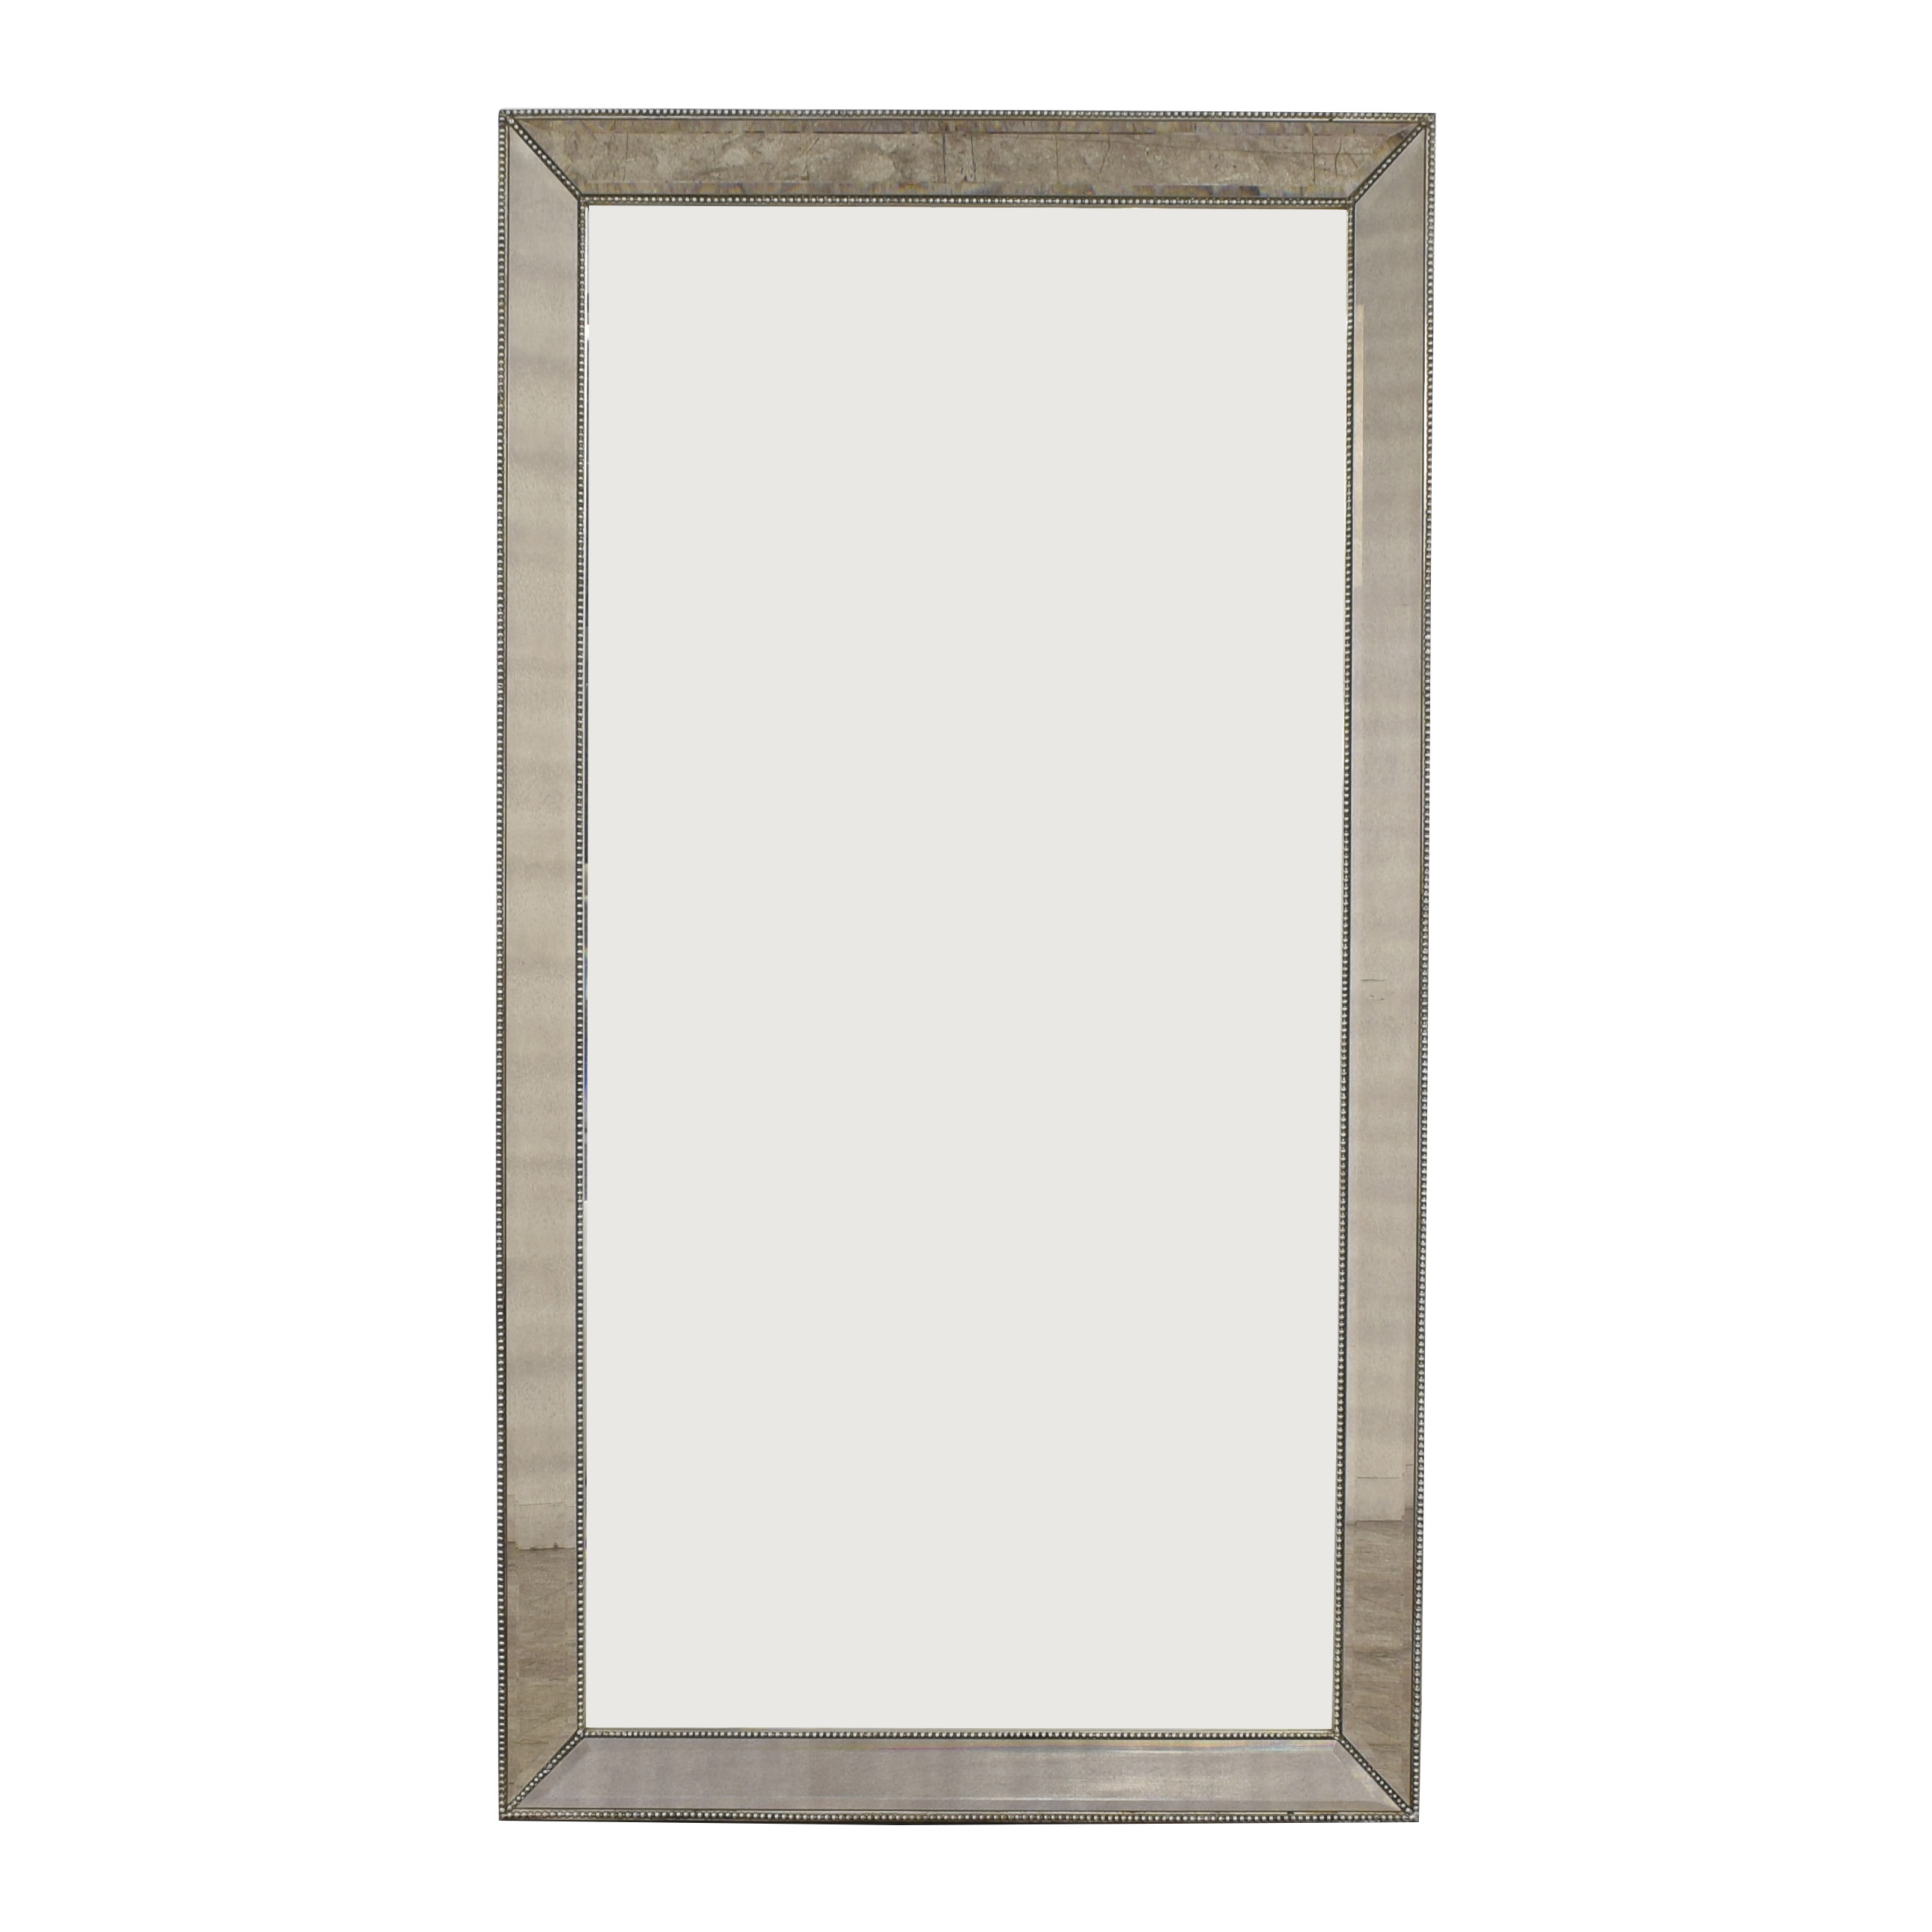 Bassett Mirror Company Bassett Mirror Company Beaded Leaner Mirror dimensions